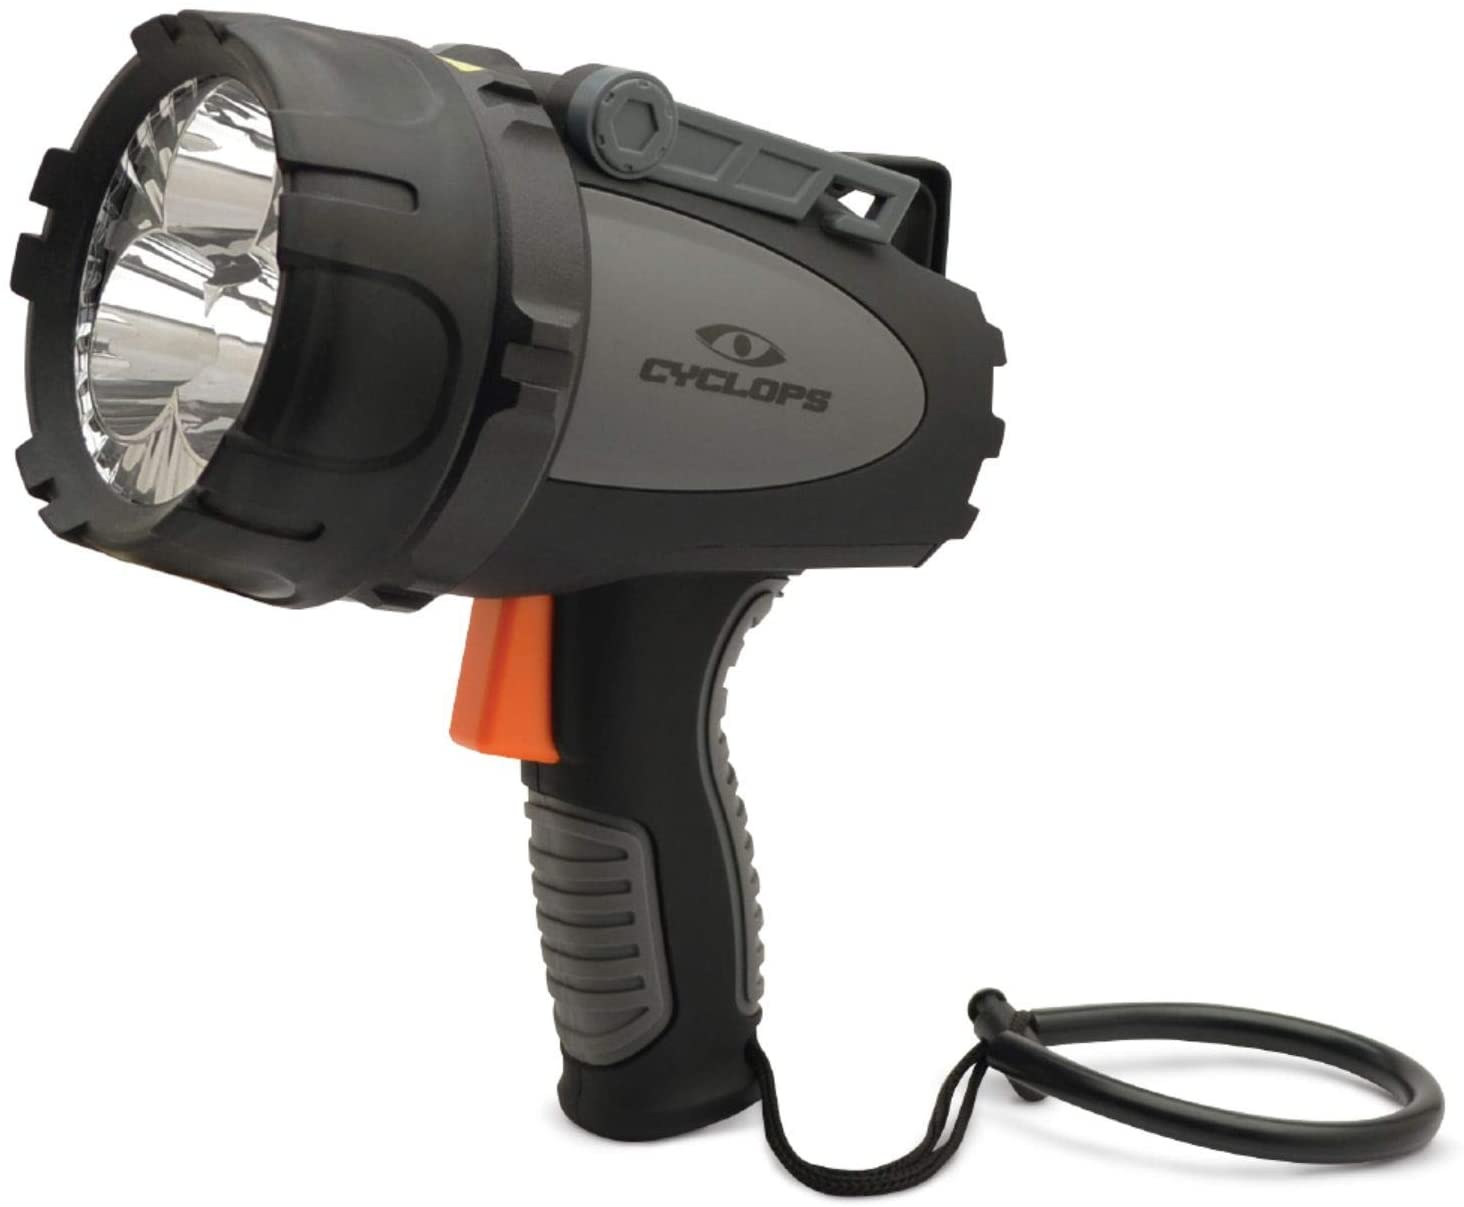 Cyclops Revo 4500 Lm Rechargeable Spotlight